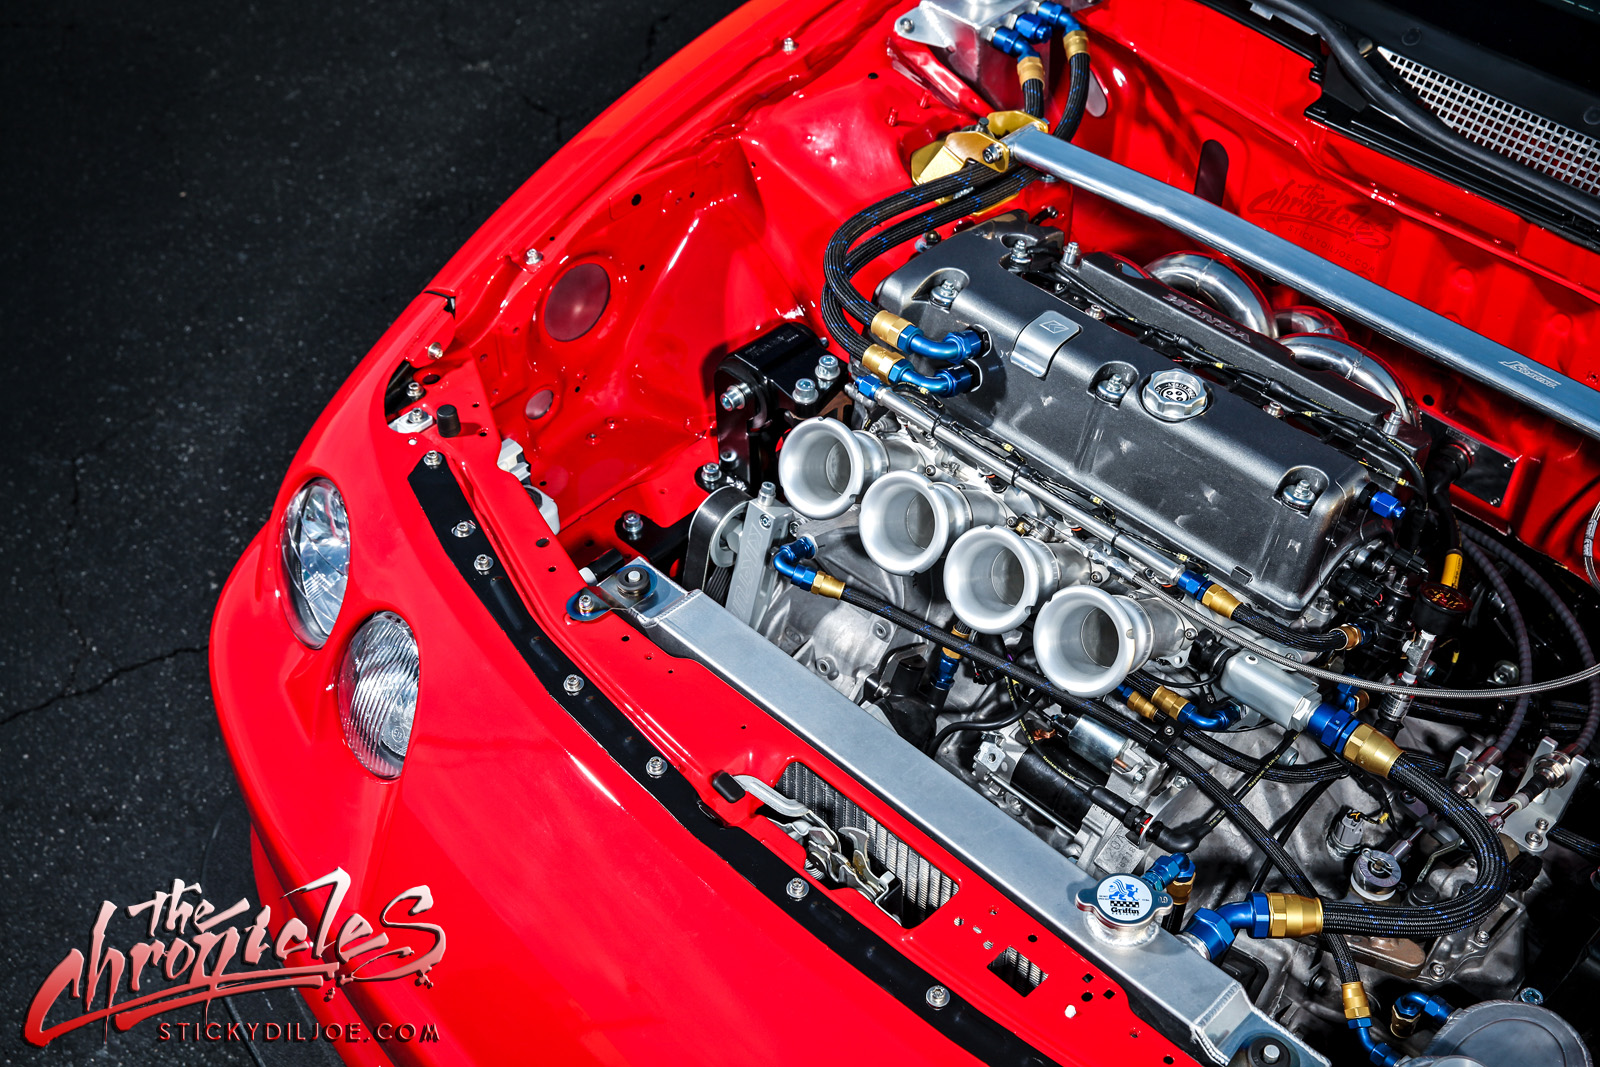 Exclusive Content: Unpublished Photos of Phil Sison's Integra from 2015 SS Honda Issue…